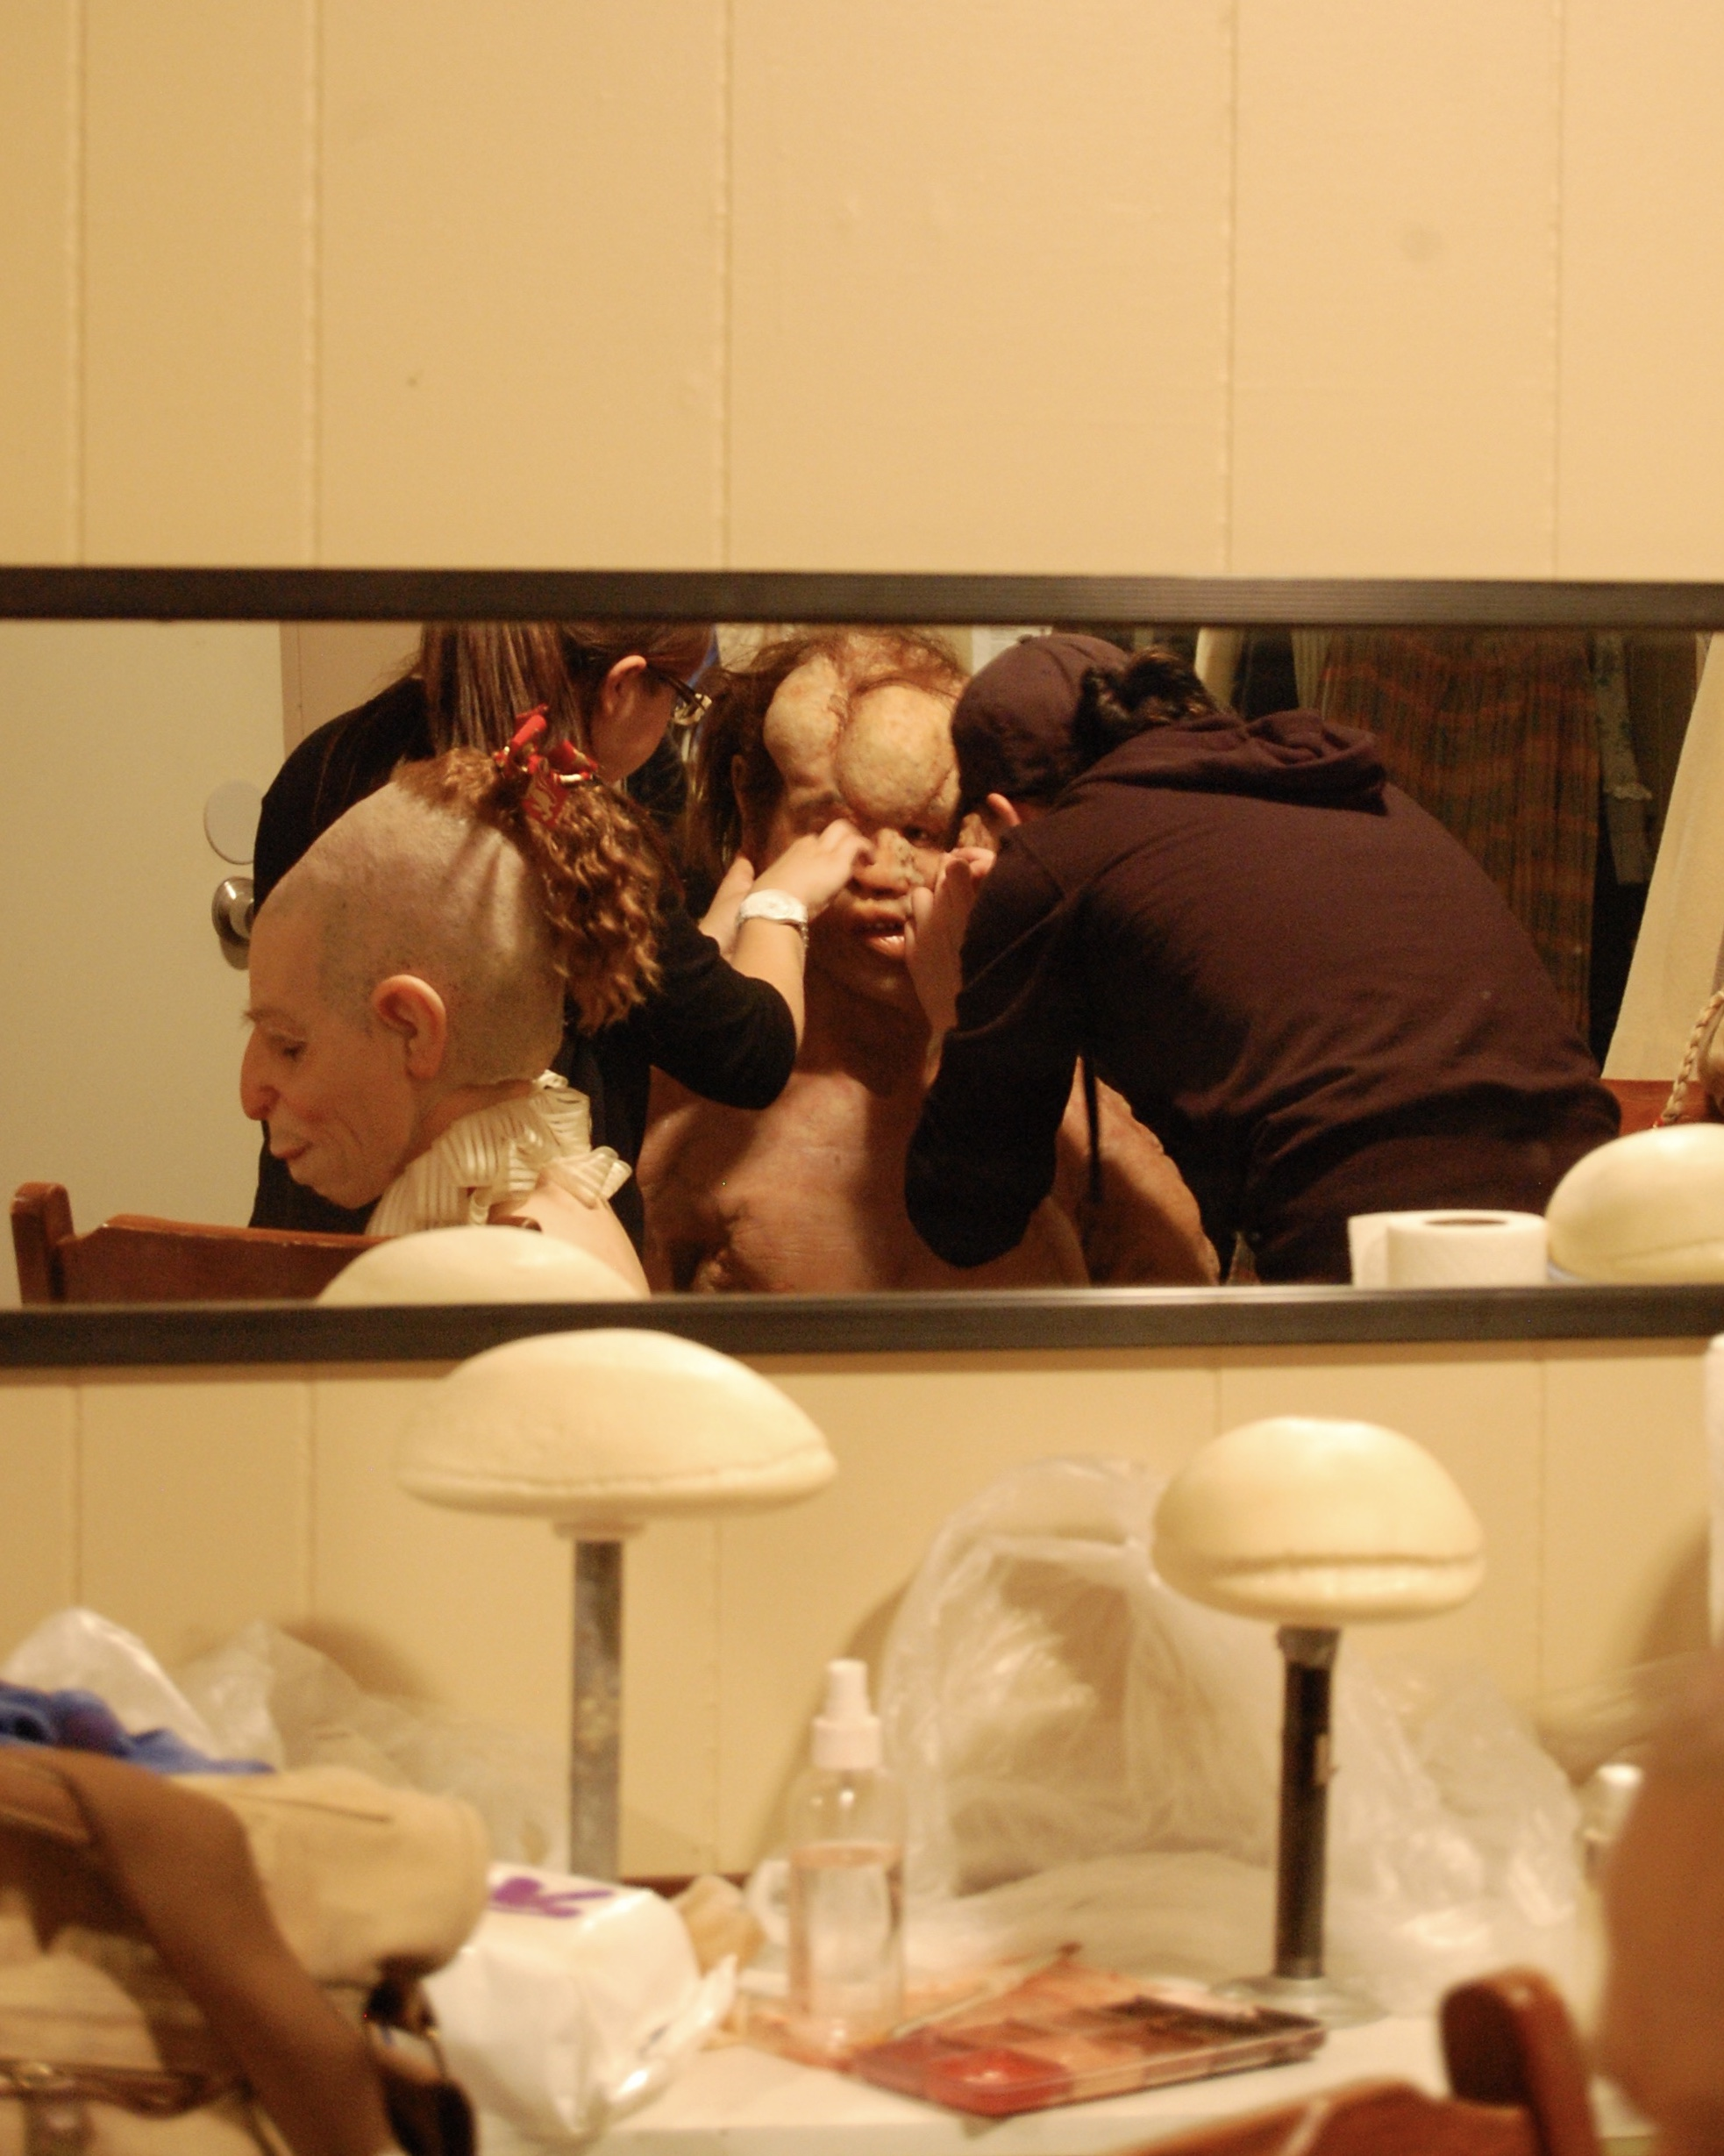 "As actor Margarita Maliagros takes a break after her own application, make-up effects artists Lee Komet and Afton Adams apply special character make-up to actor Sean Hoagland as part of the process of physically recreating the historical ""Elephant Man"" onstage for the first time in the play's history in Lascaux Entertainment's 2011 production of  The Elephant Man , directed by John Drouillard.  Photo by Nirvana Kowlessar."